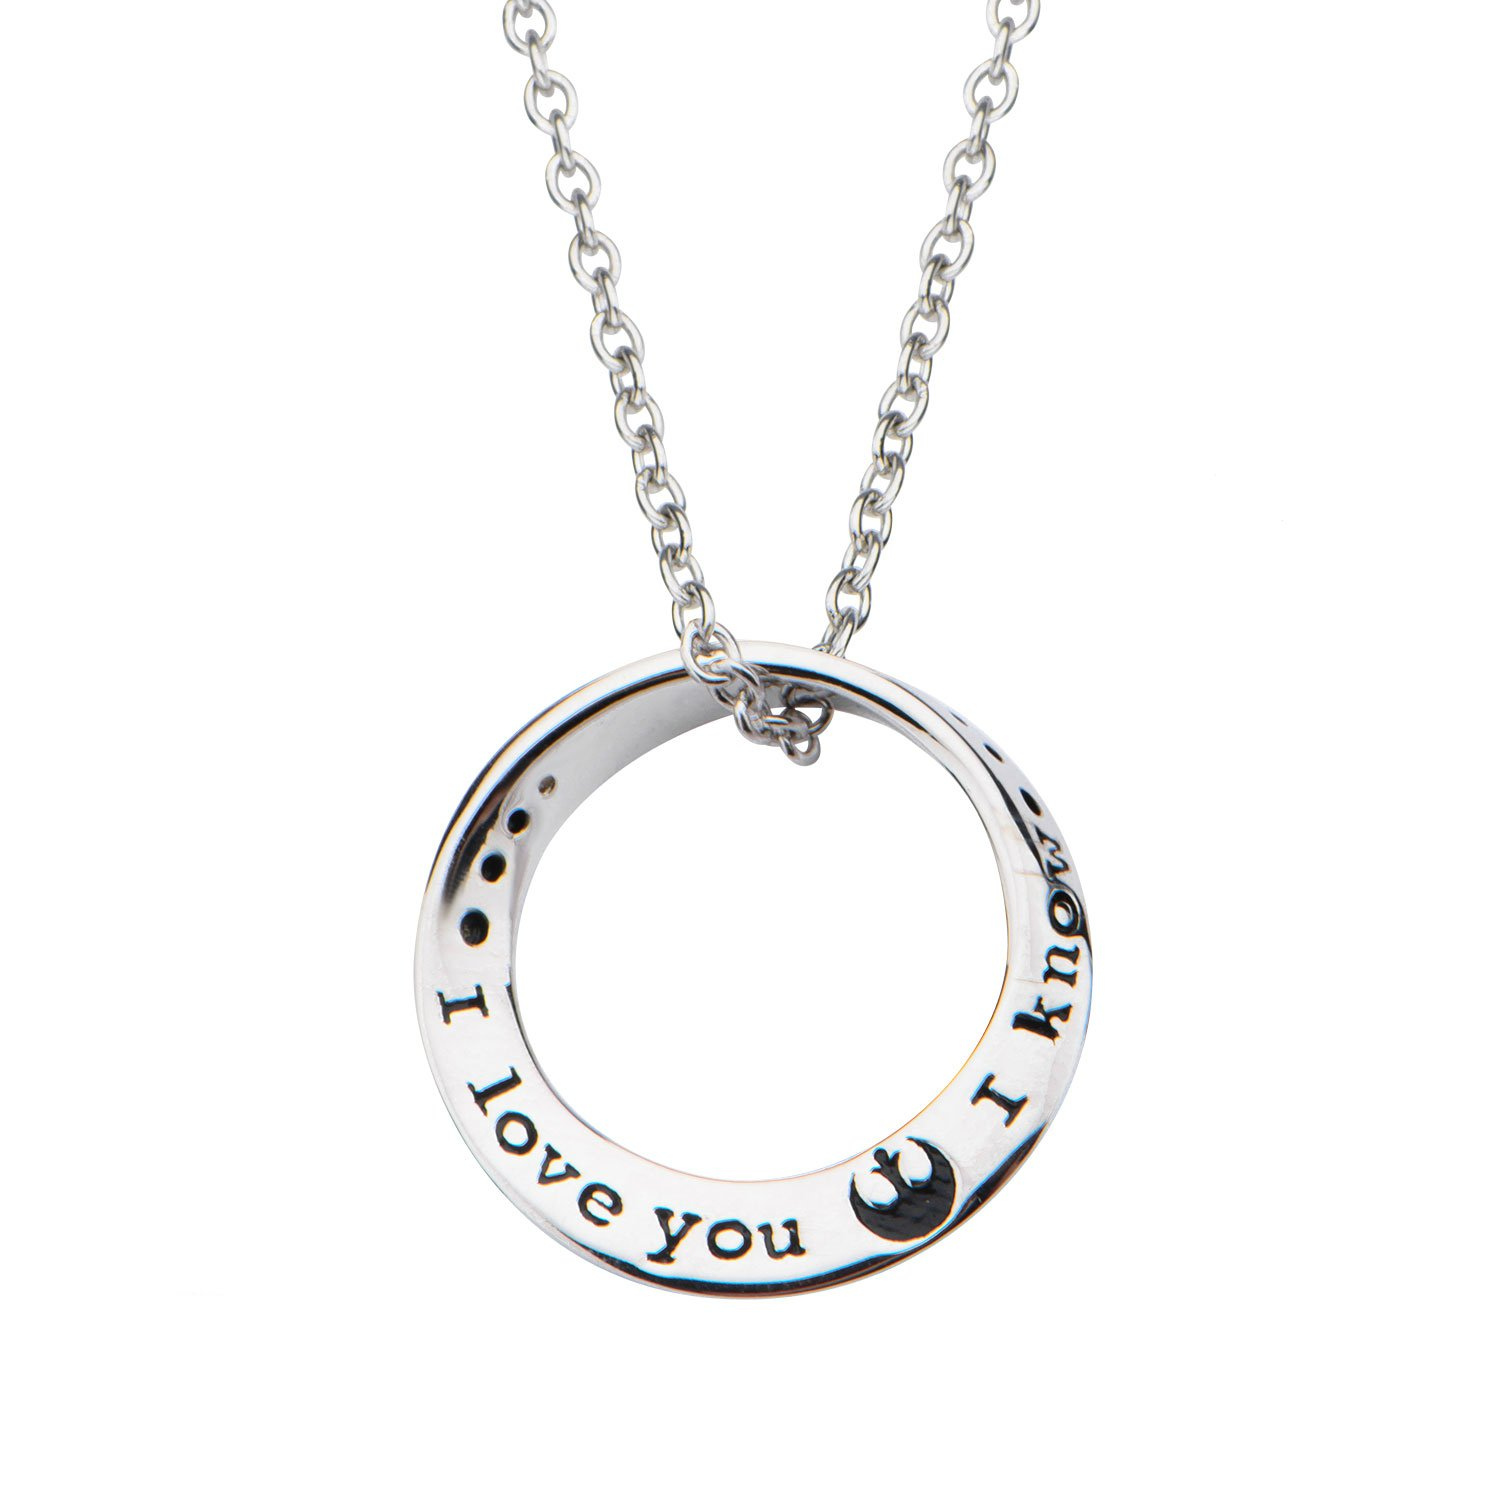 Superheroes Brand Star Wars Quote I Love You. I Know. Mobius 925 Sterling Silver Pendant Necklace w/Gift Box